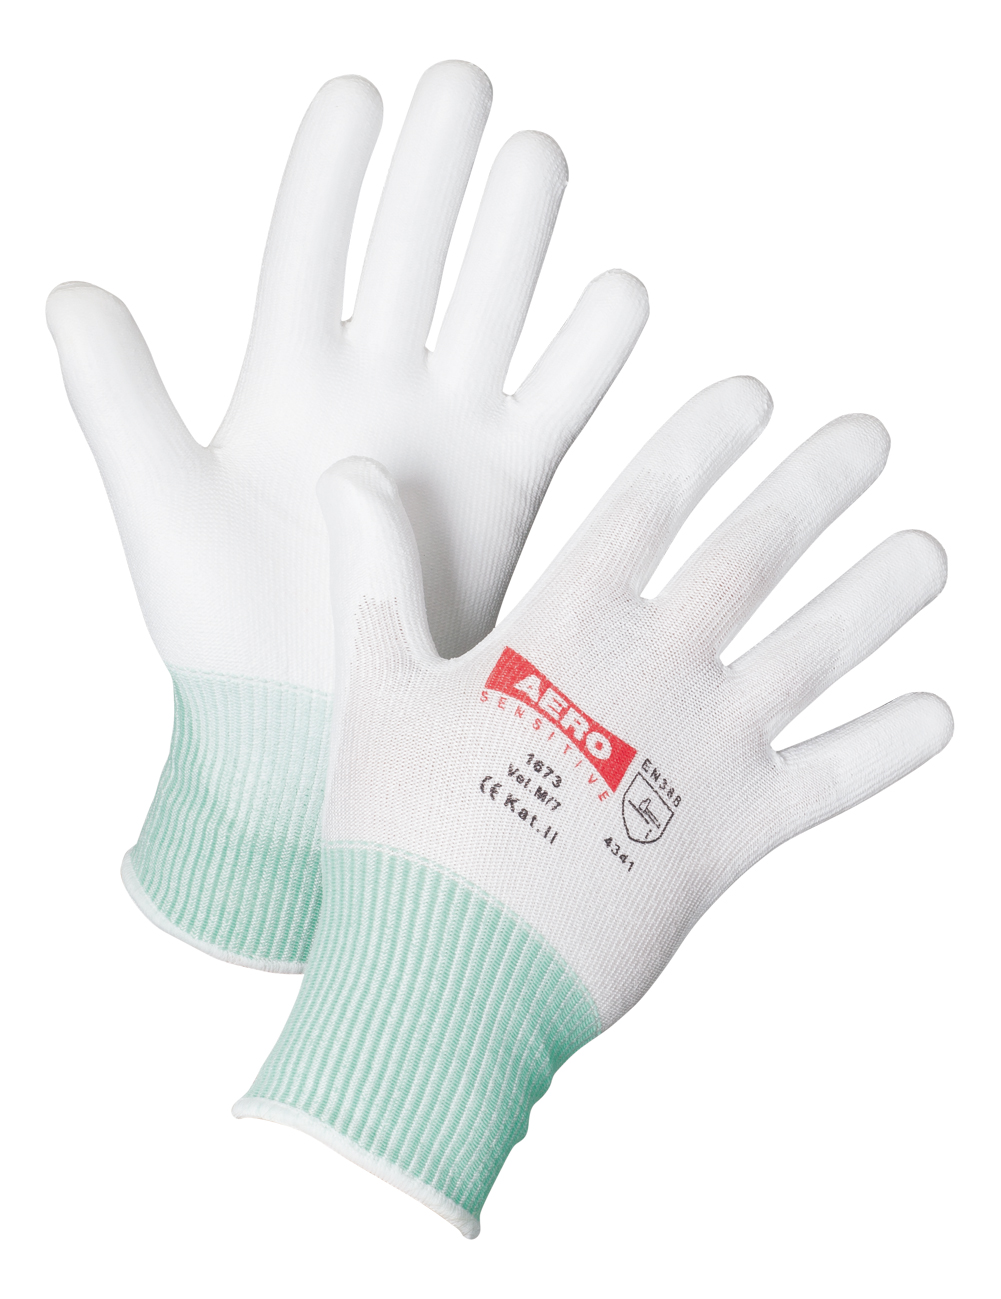 AERO Gloves PurtSkin Cut3 1673, with Polyurethane Coating